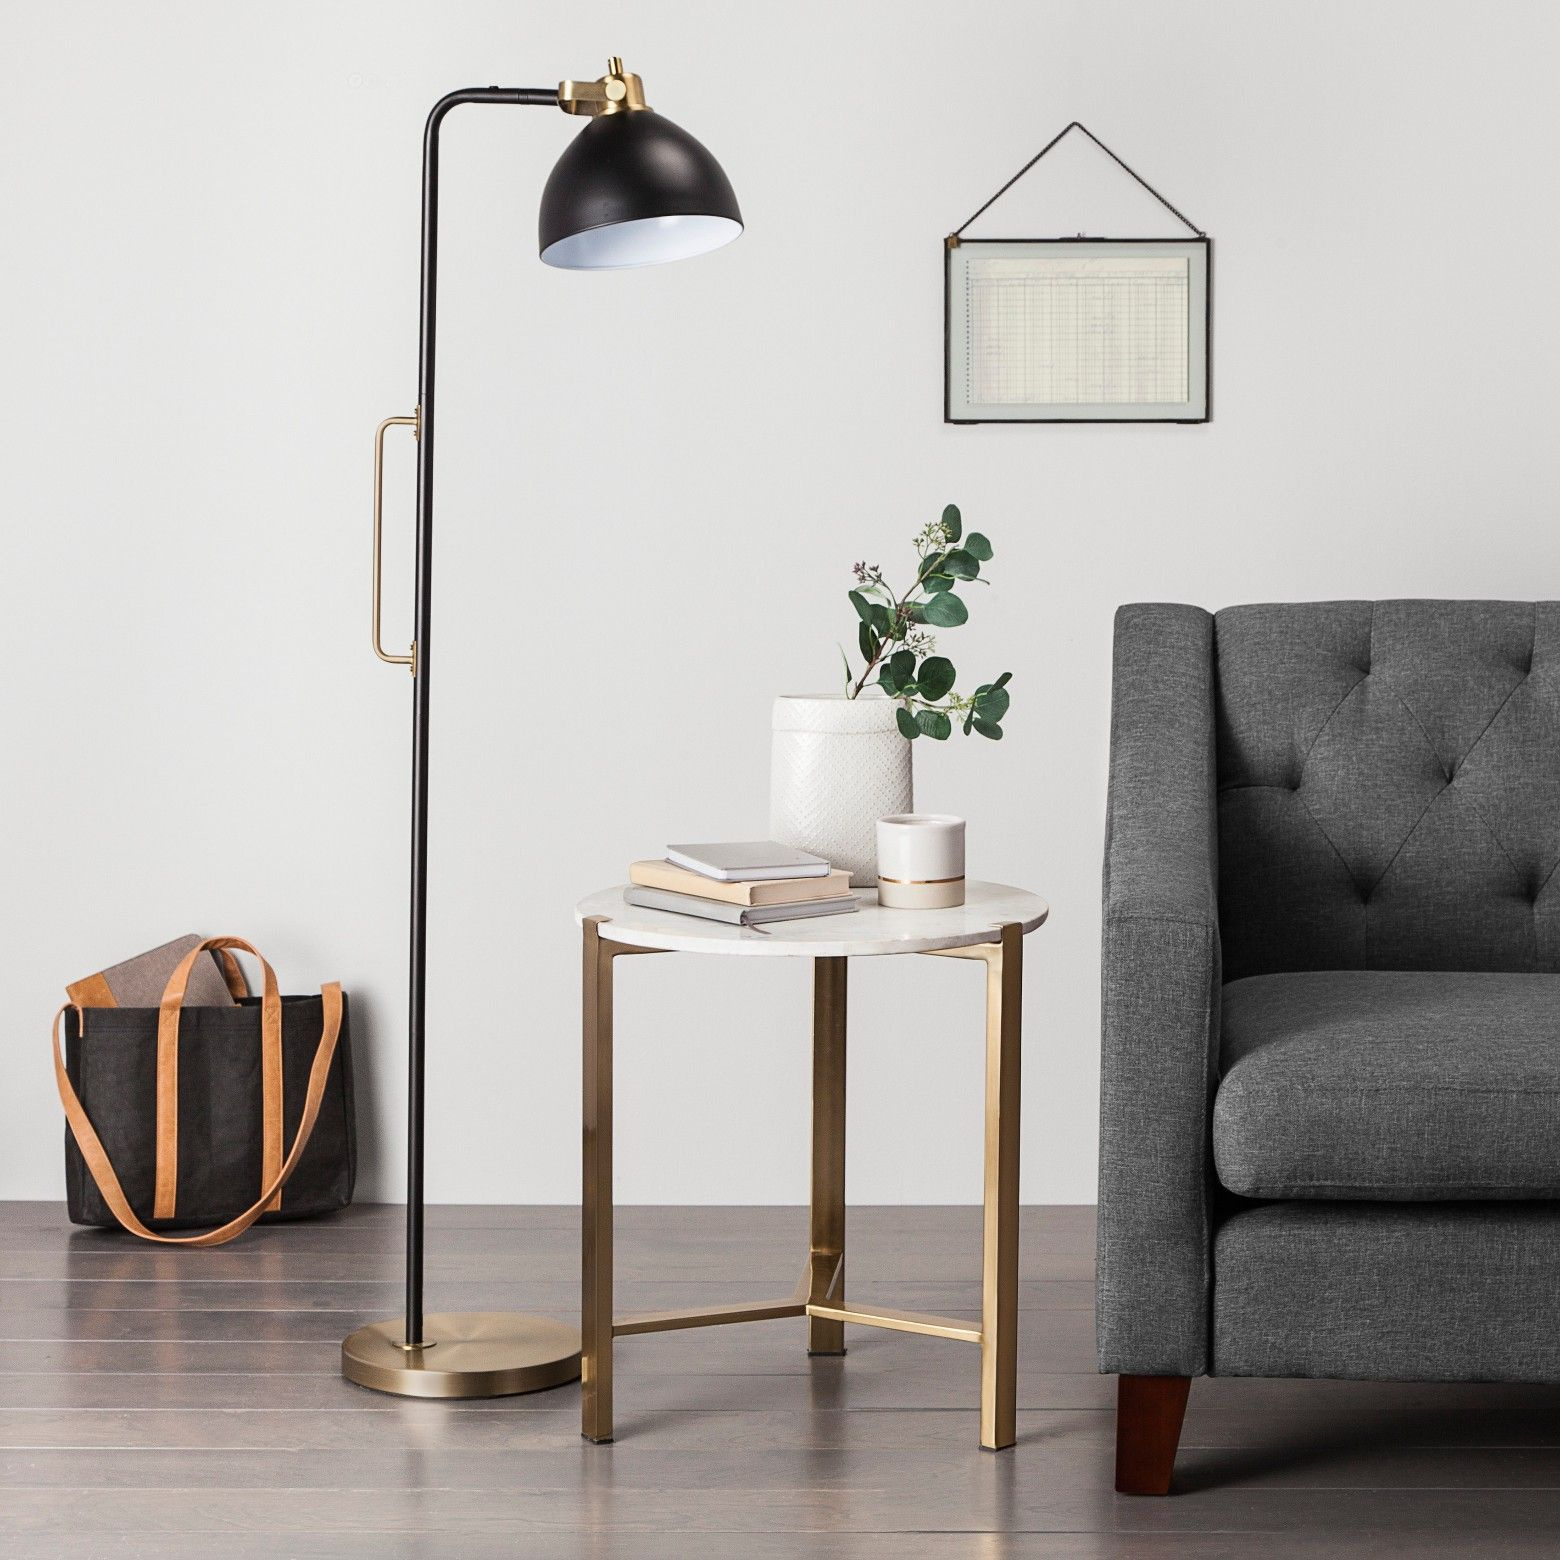 Illuminate Your Space In Modern Style With This Black And Brass Handle Floor Lamp From Hearth